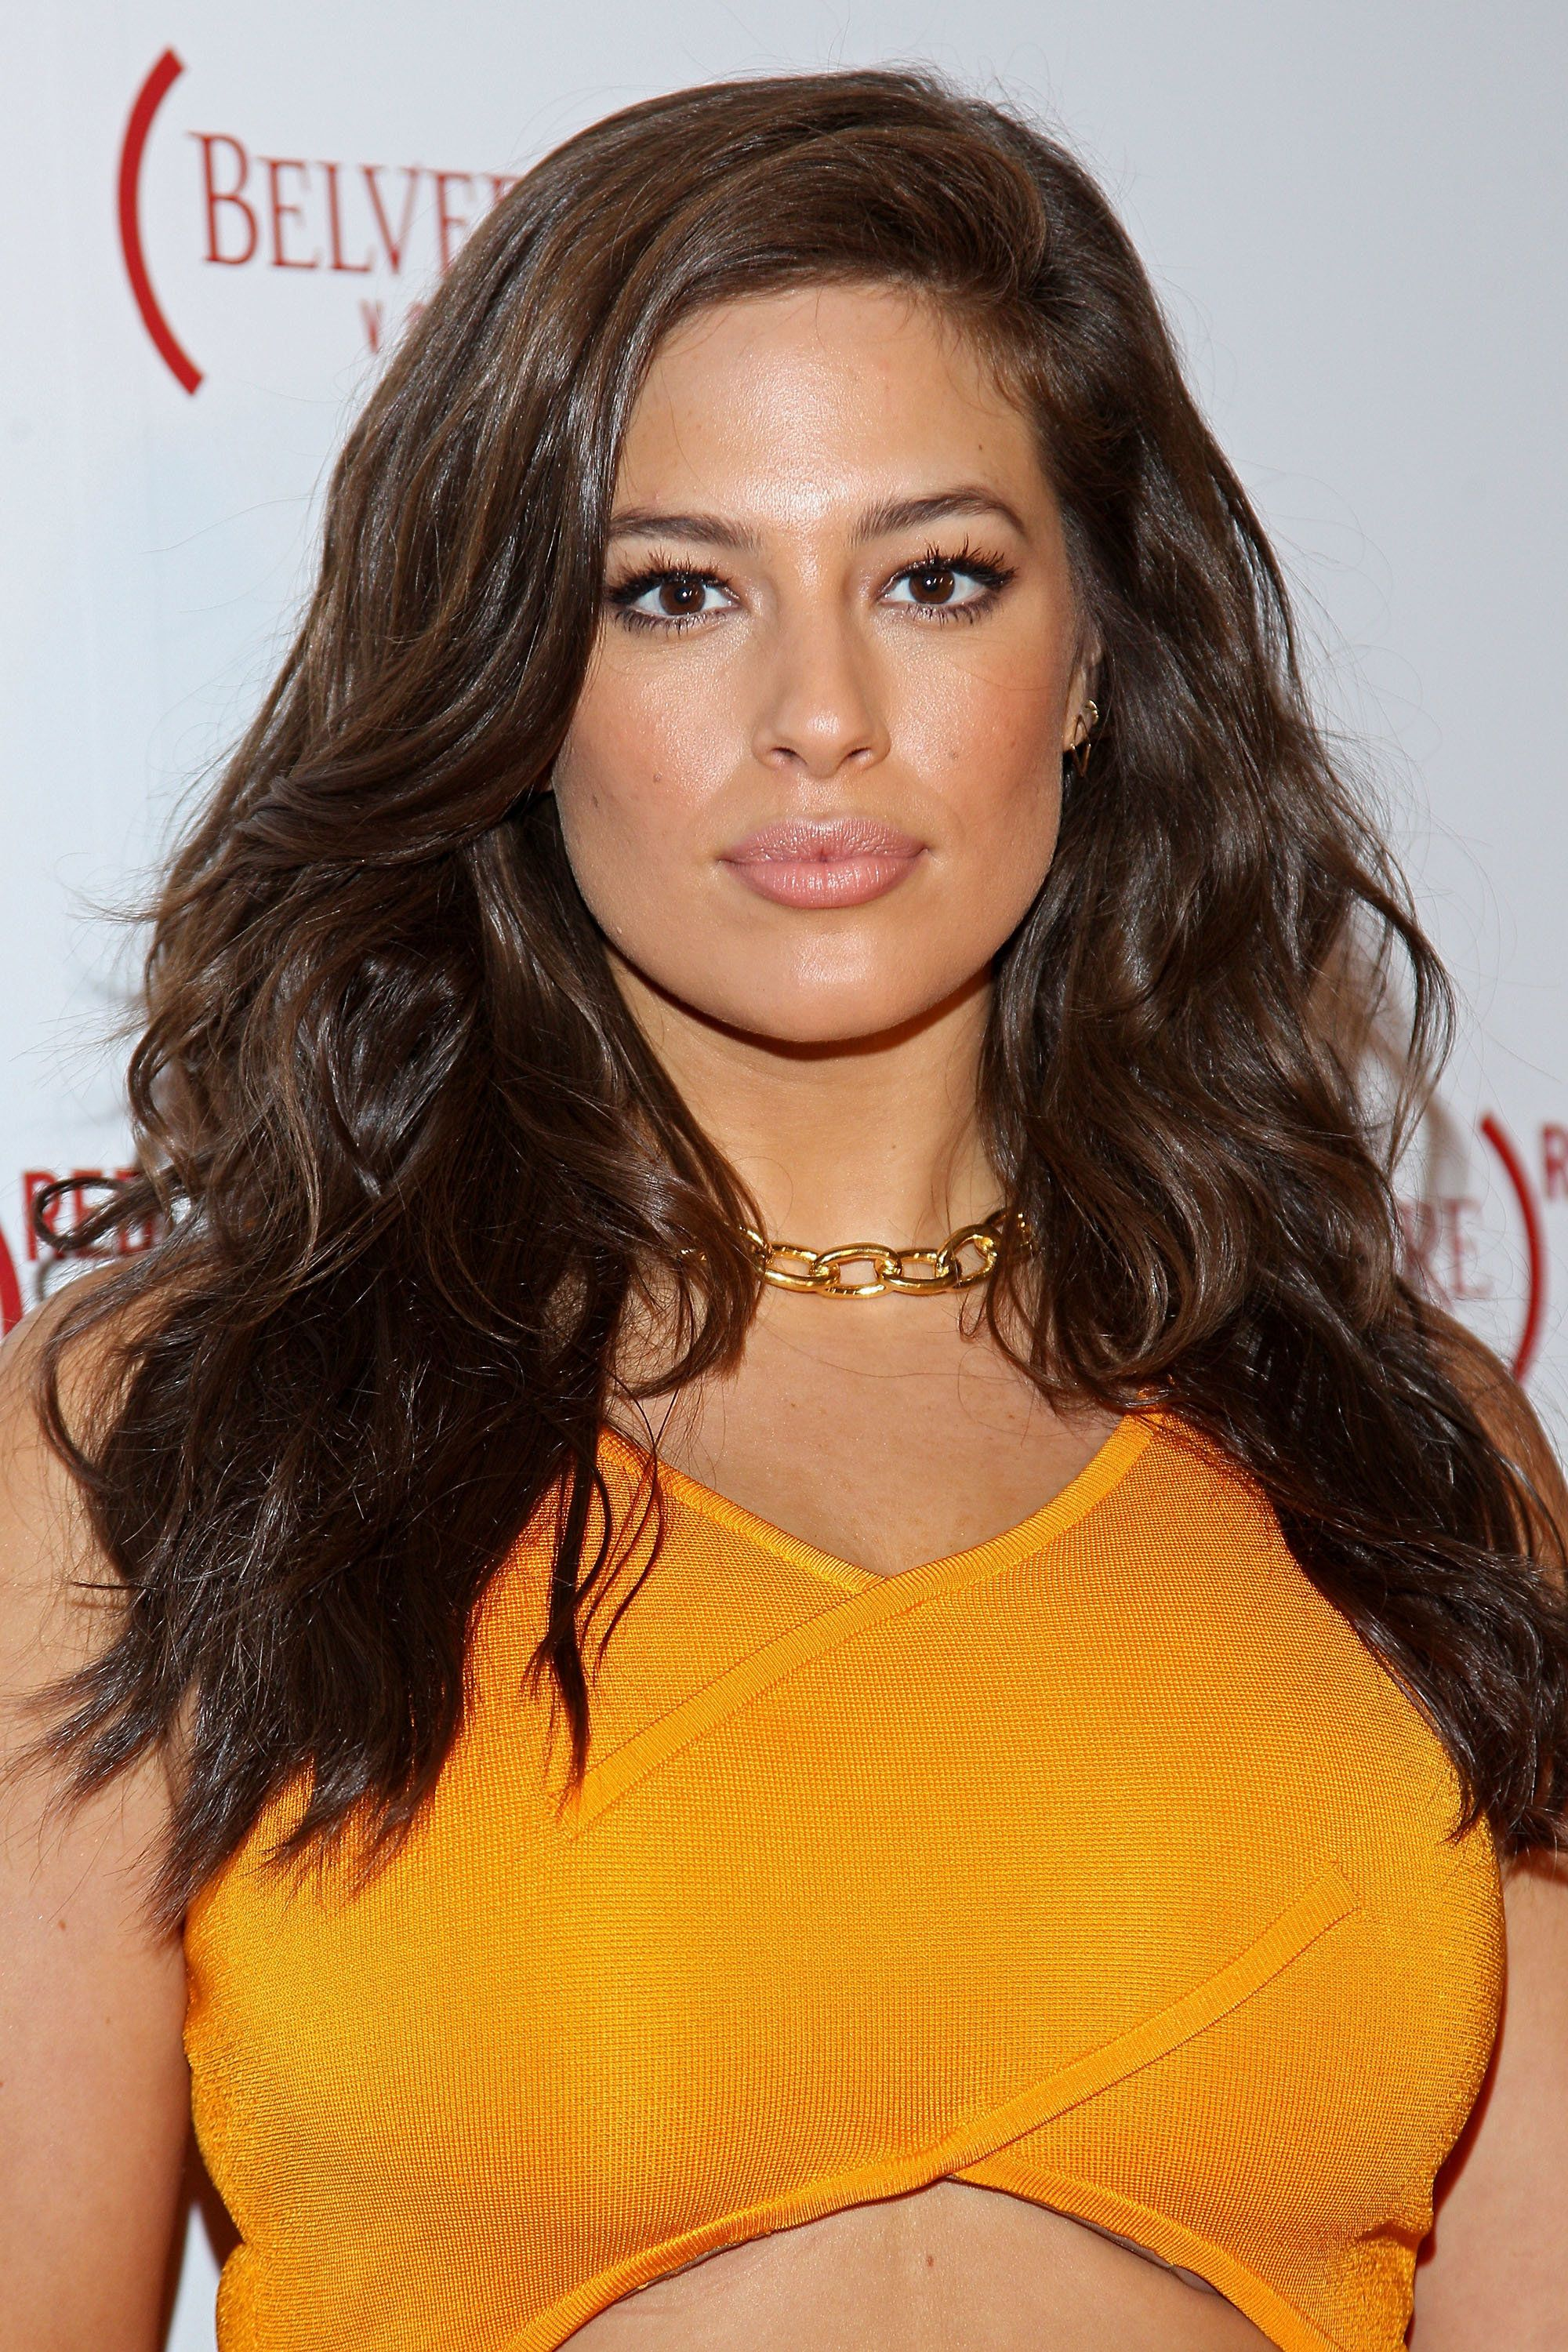 NEW YORK, NY - AUGUST 27:  Ashley Graham attends the introduction of John Legend as a (BELVEDERE) RED Brand Ambassador at The Apollo Theater on August 27, 2016 in New York City.  (Photo by Steve Mack/WireImage)